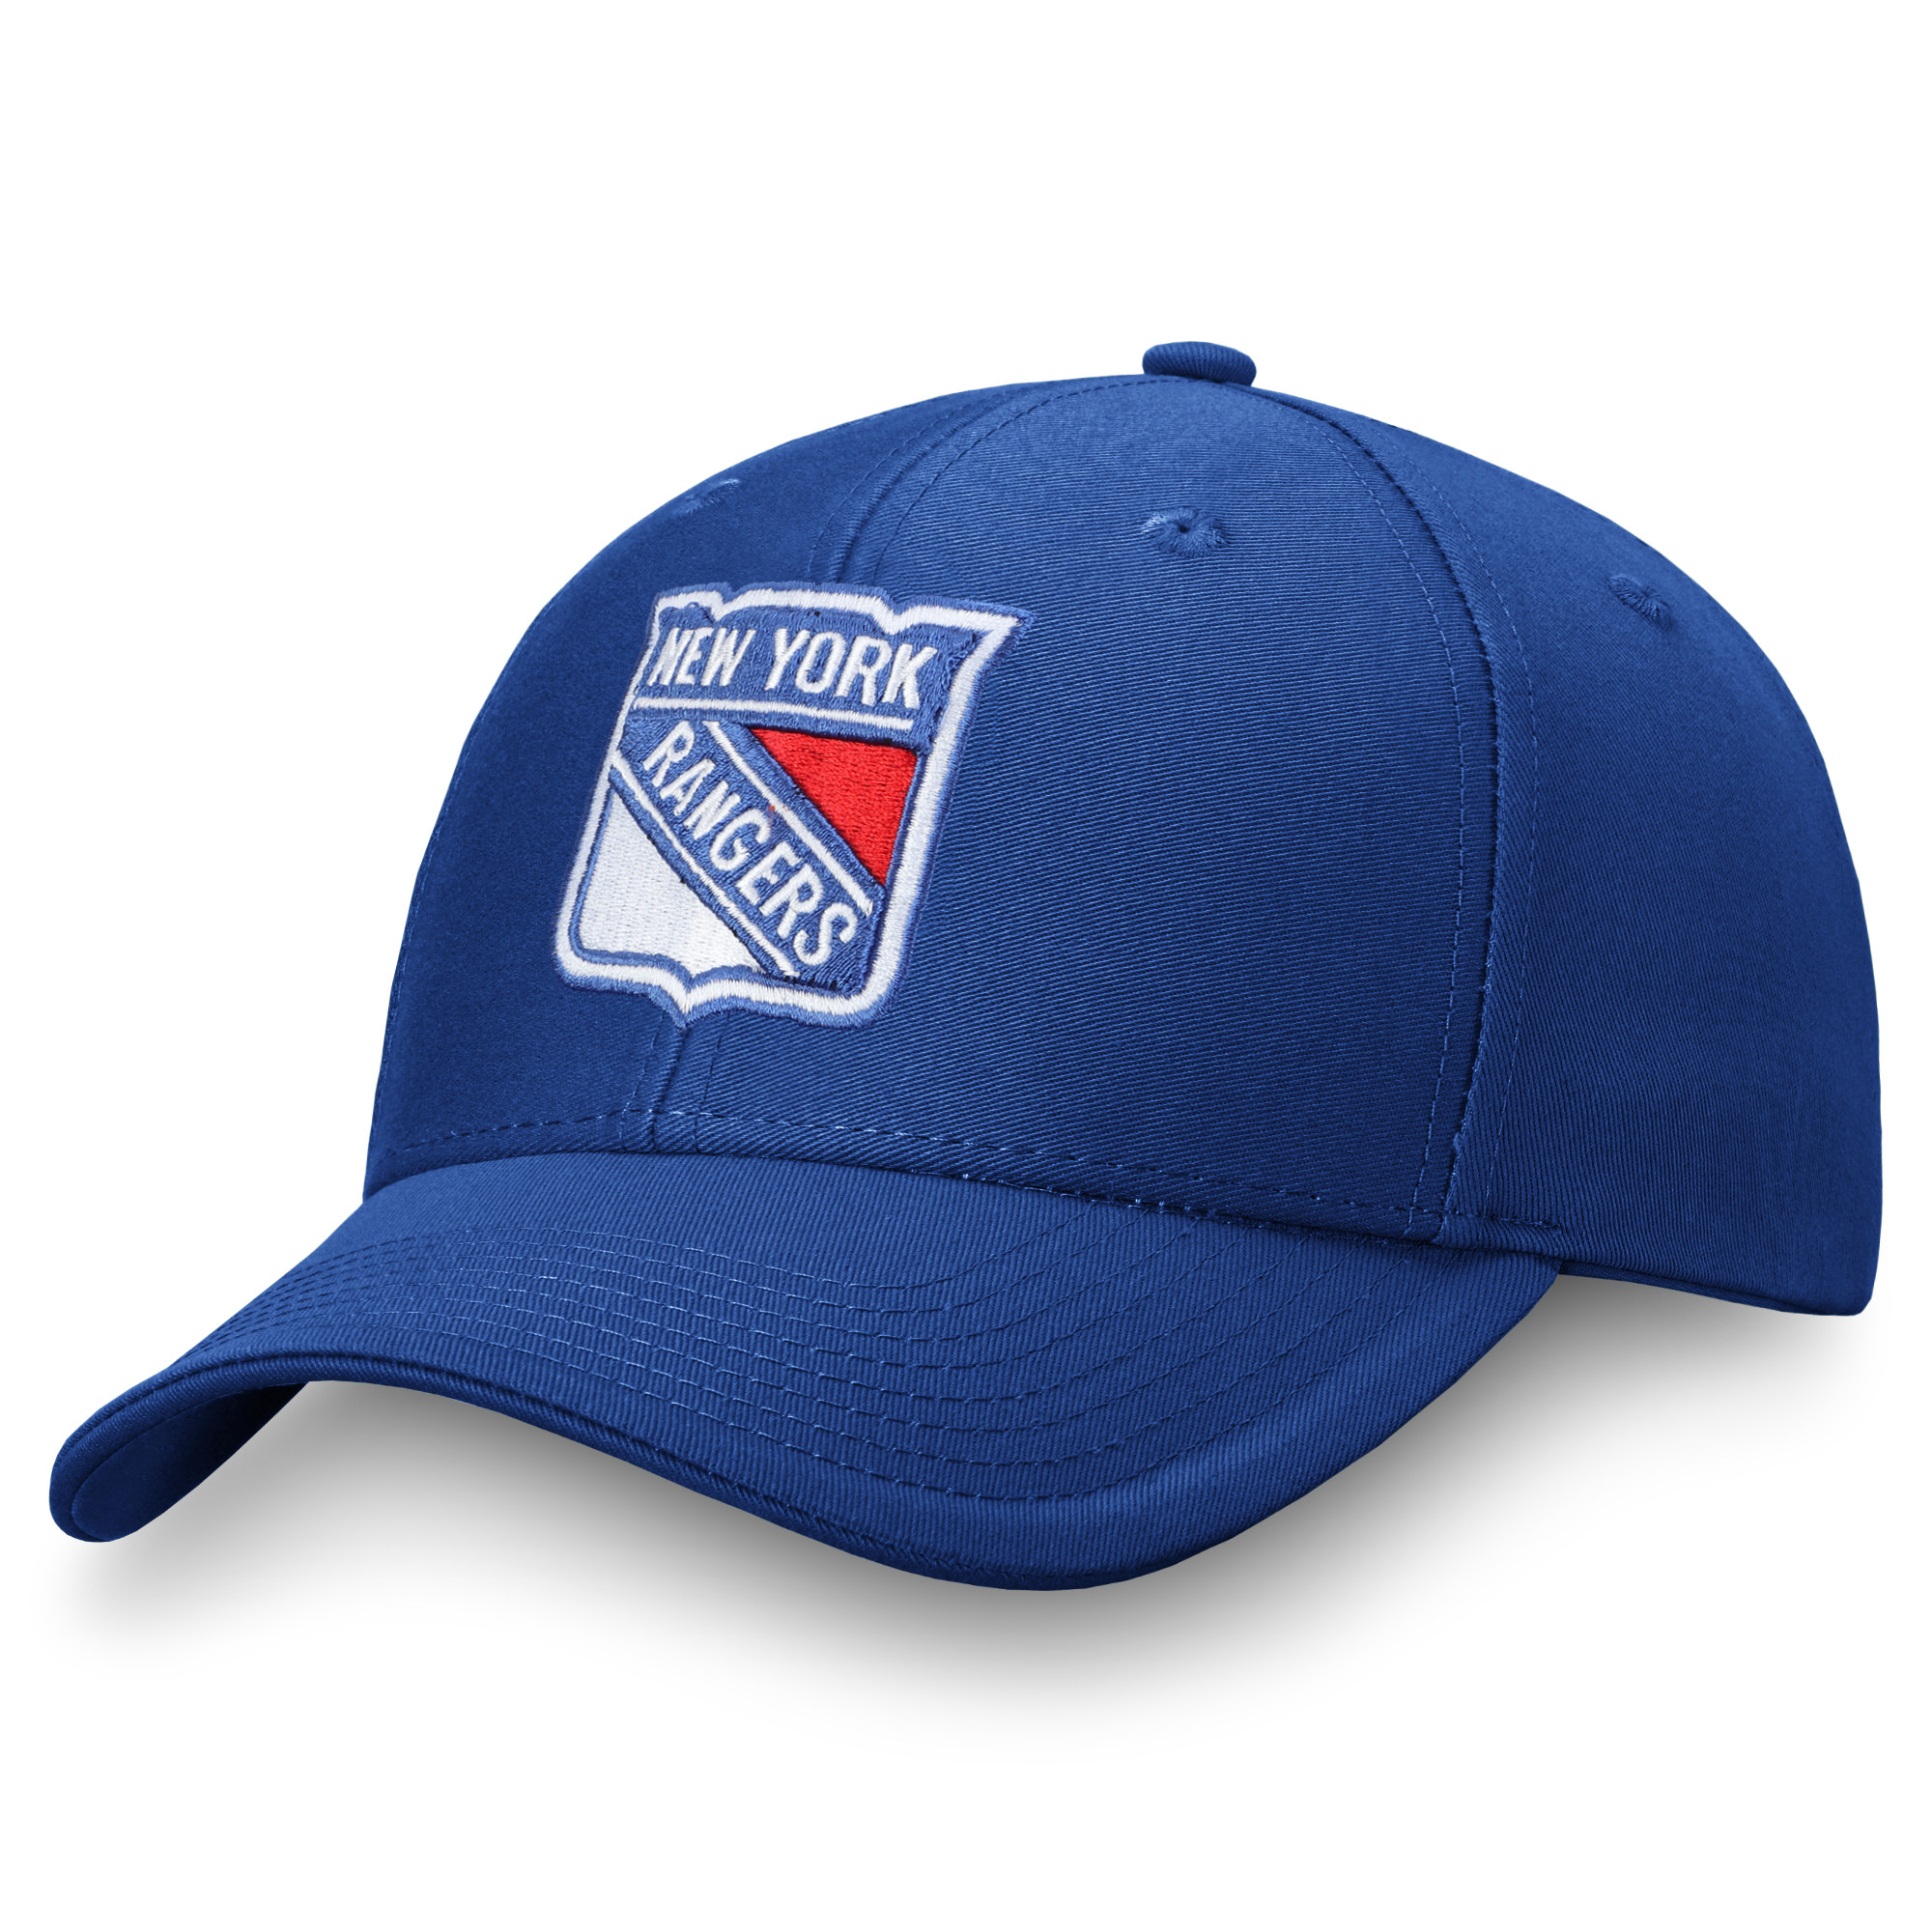 Men's Fanatics Branded Blue New York Rangers Adjustable Hat - OSFA